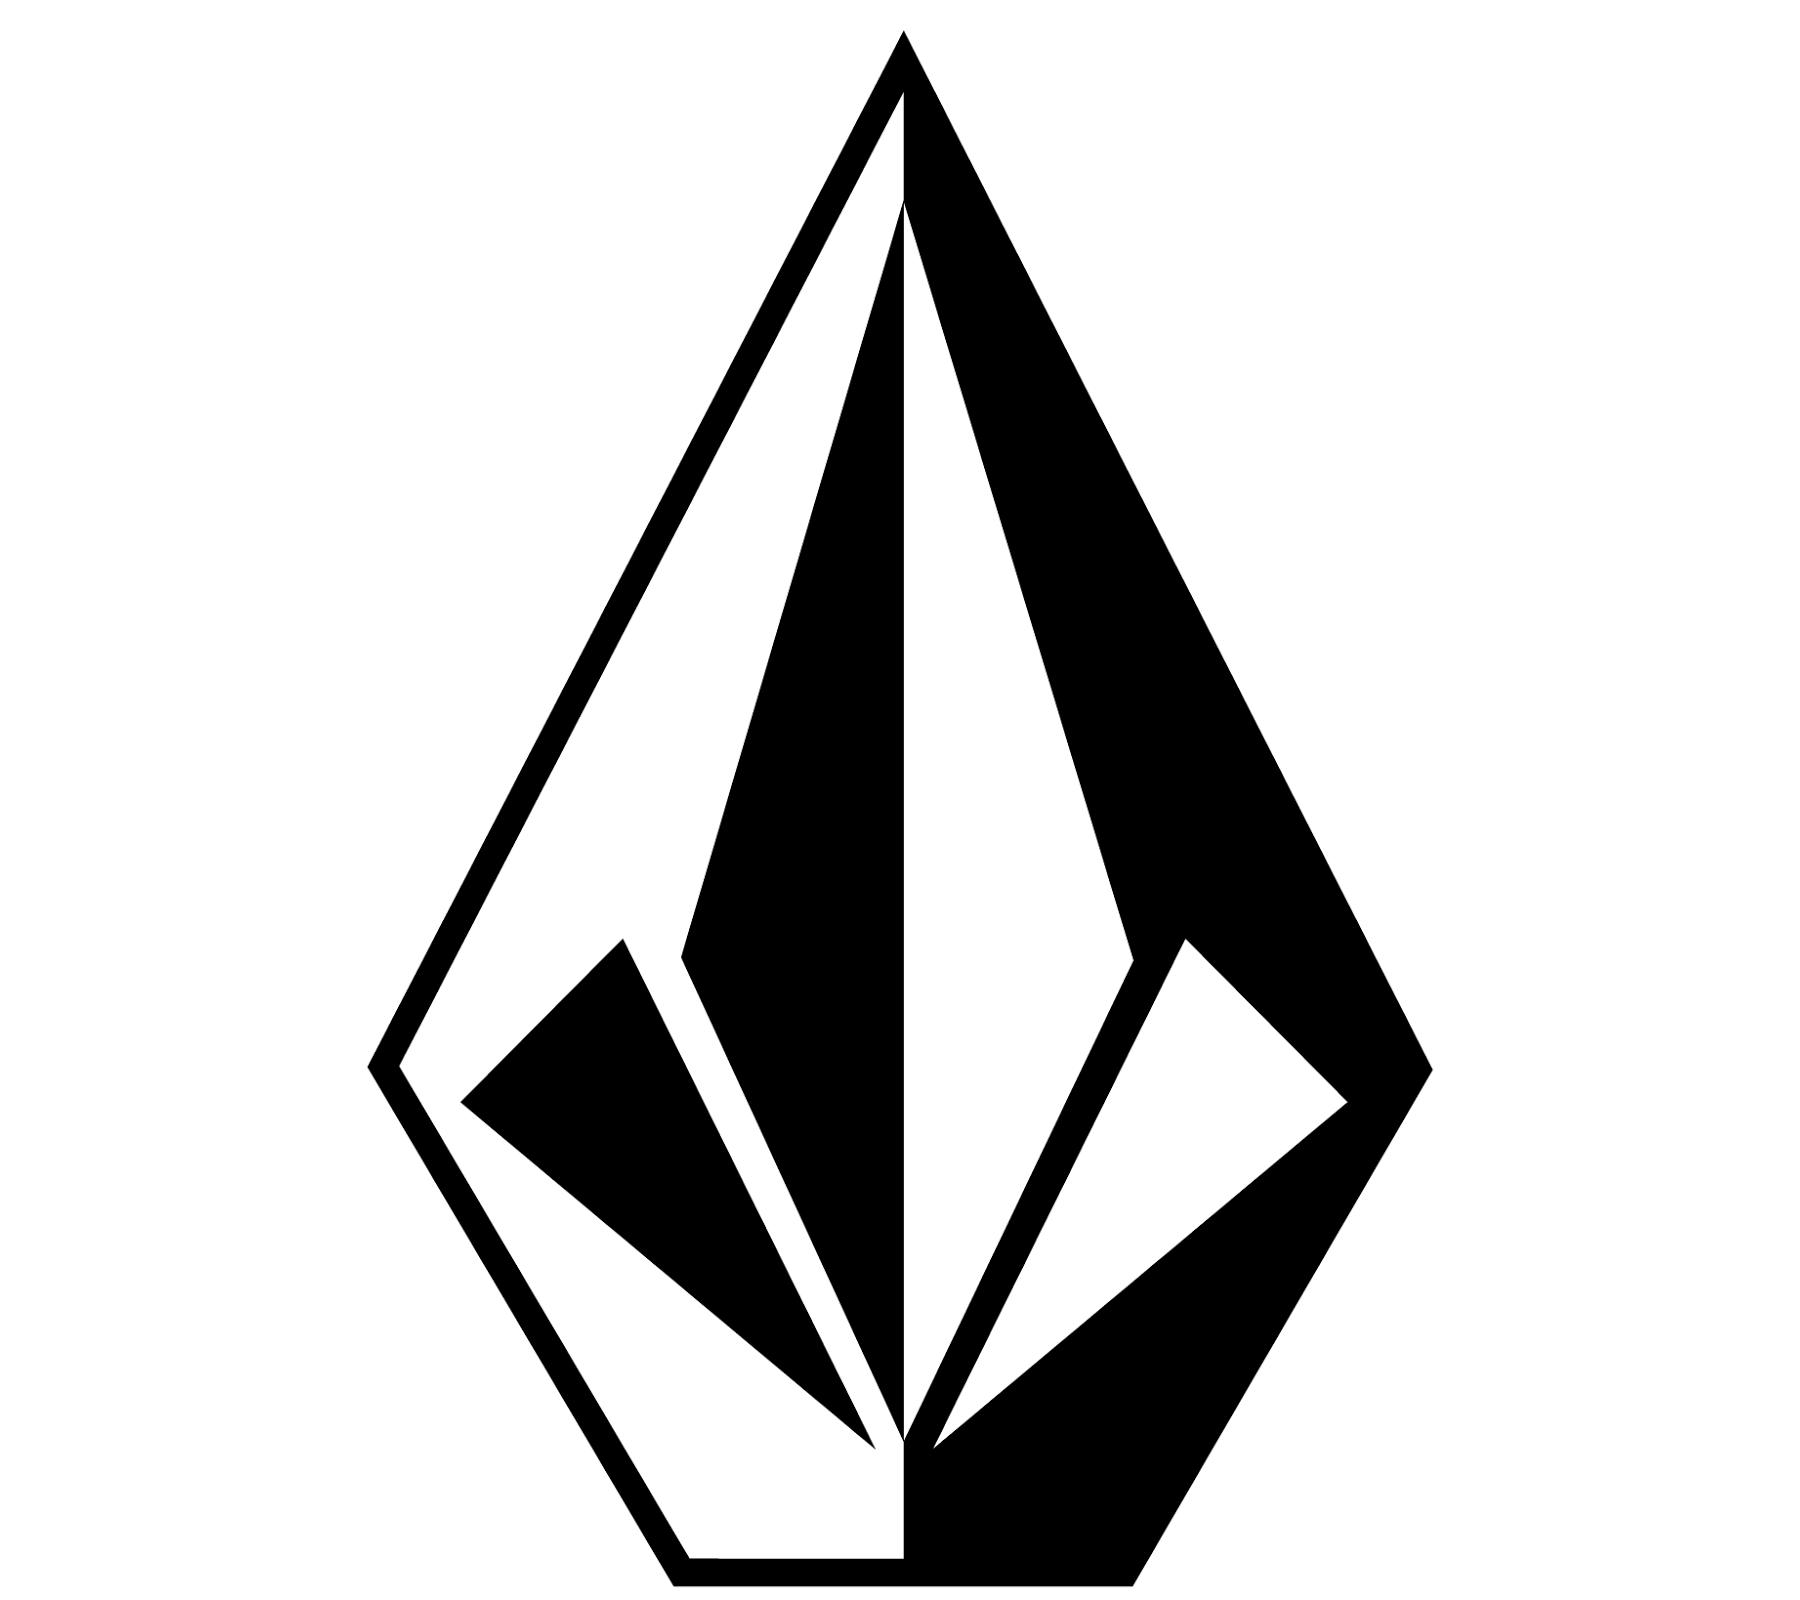 Volcom Stone Logo Meaning Awesome Graphic Library